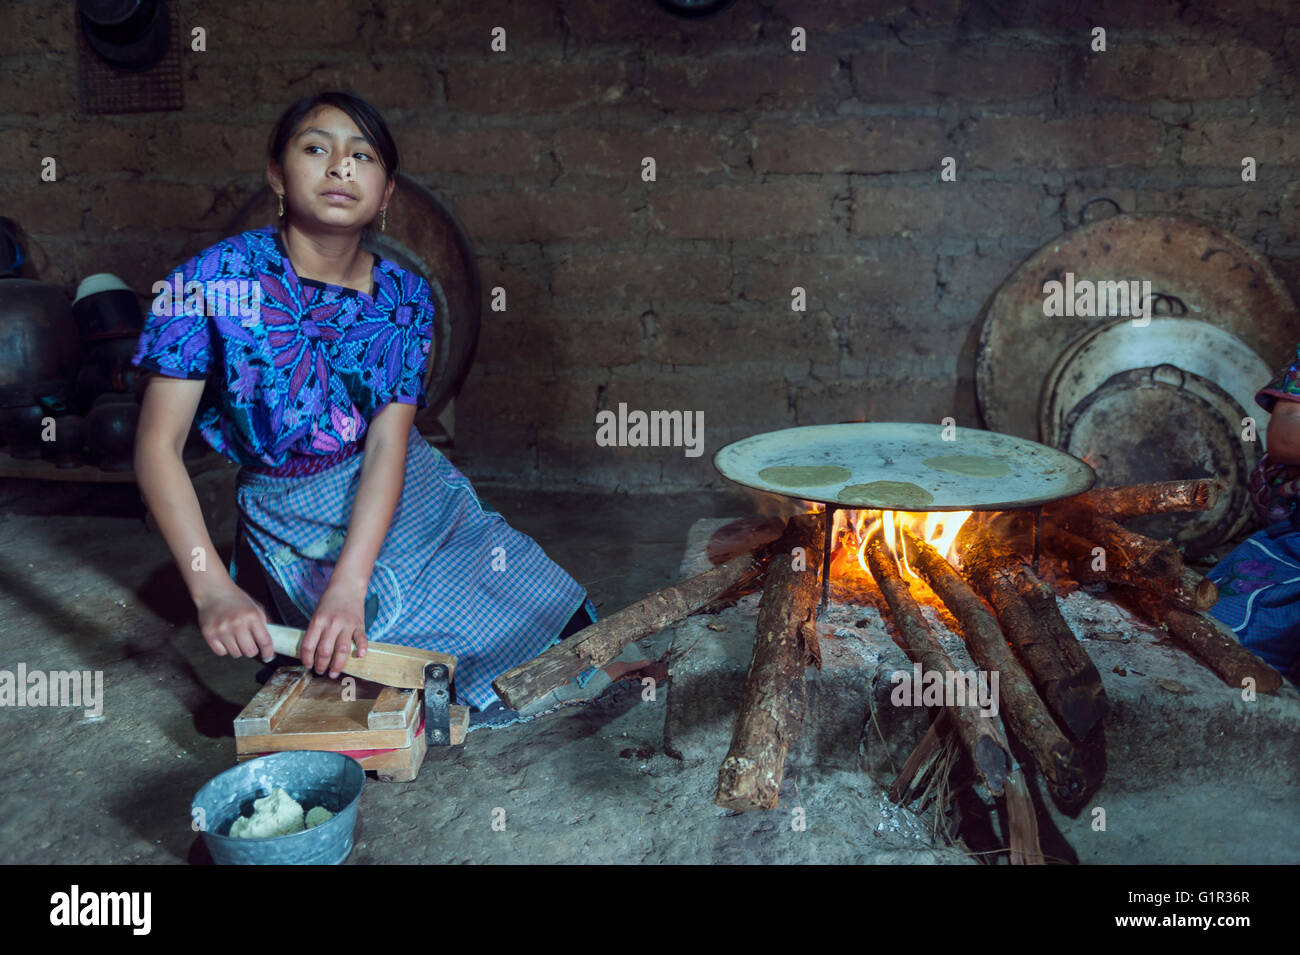 Indian woman baking tortillas. Chiapas, Mexico - Stock Image